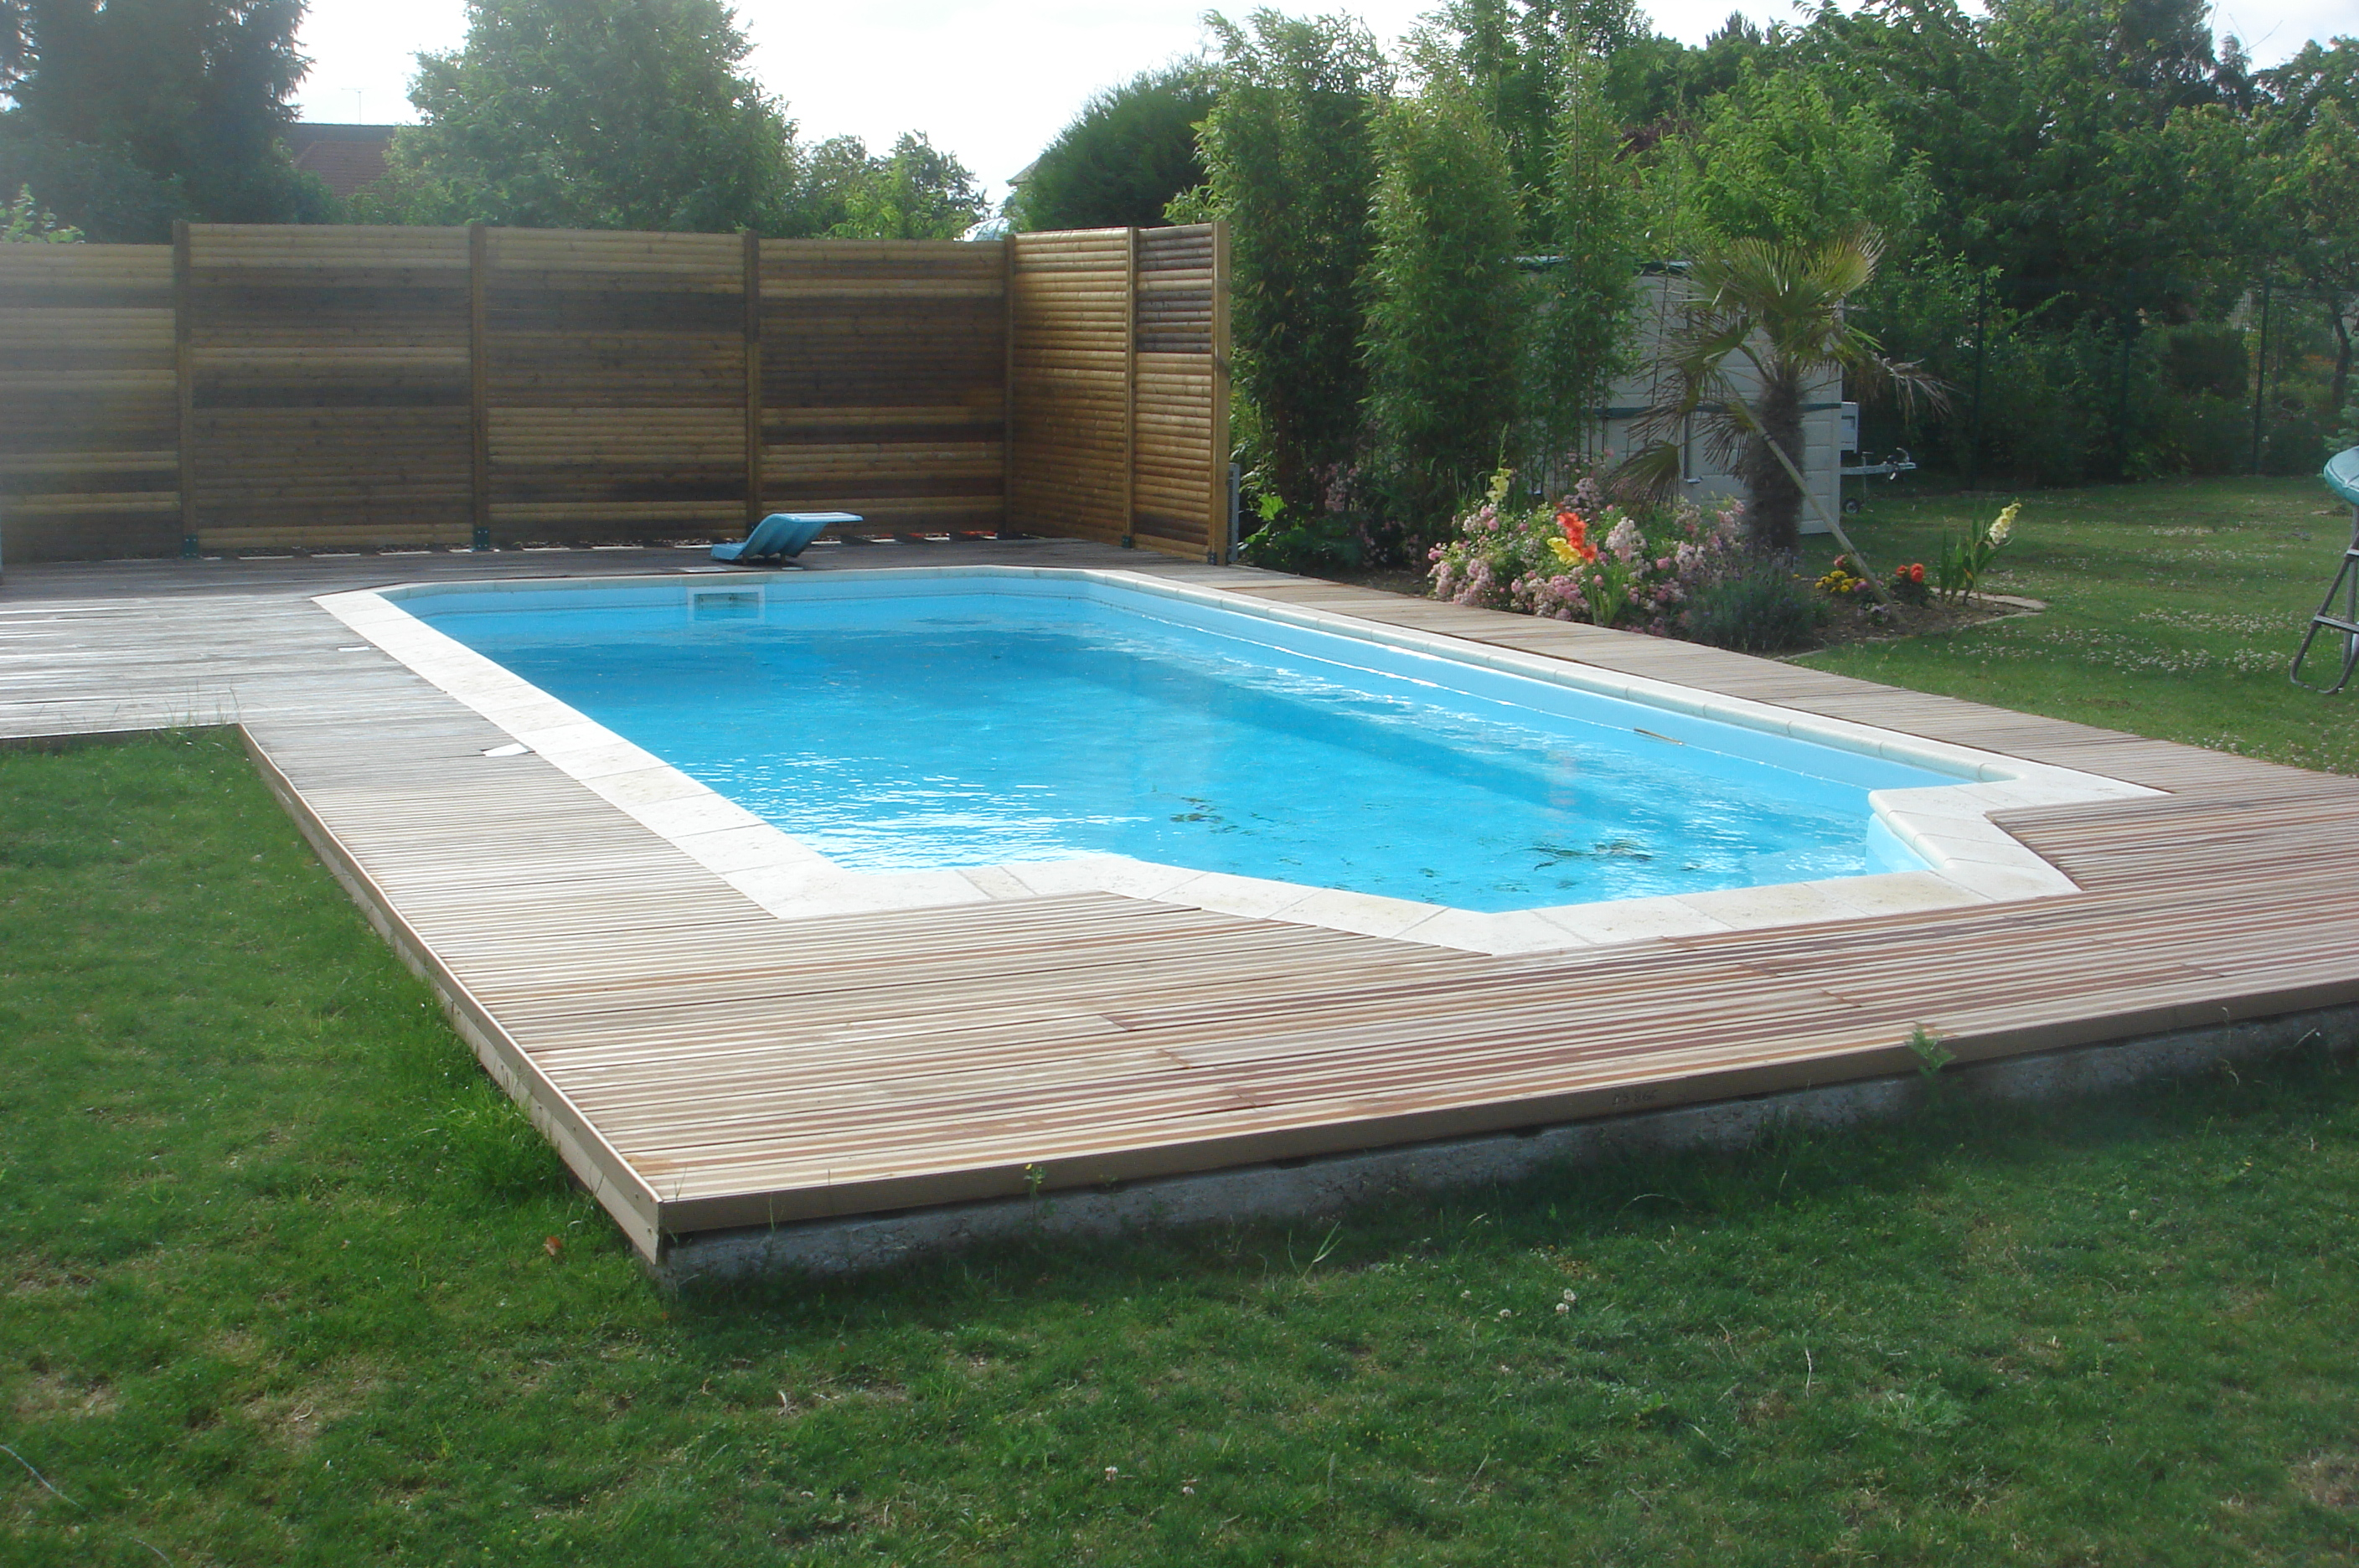 piscine coque indiana 2 picardie piscine. Black Bedroom Furniture Sets. Home Design Ideas